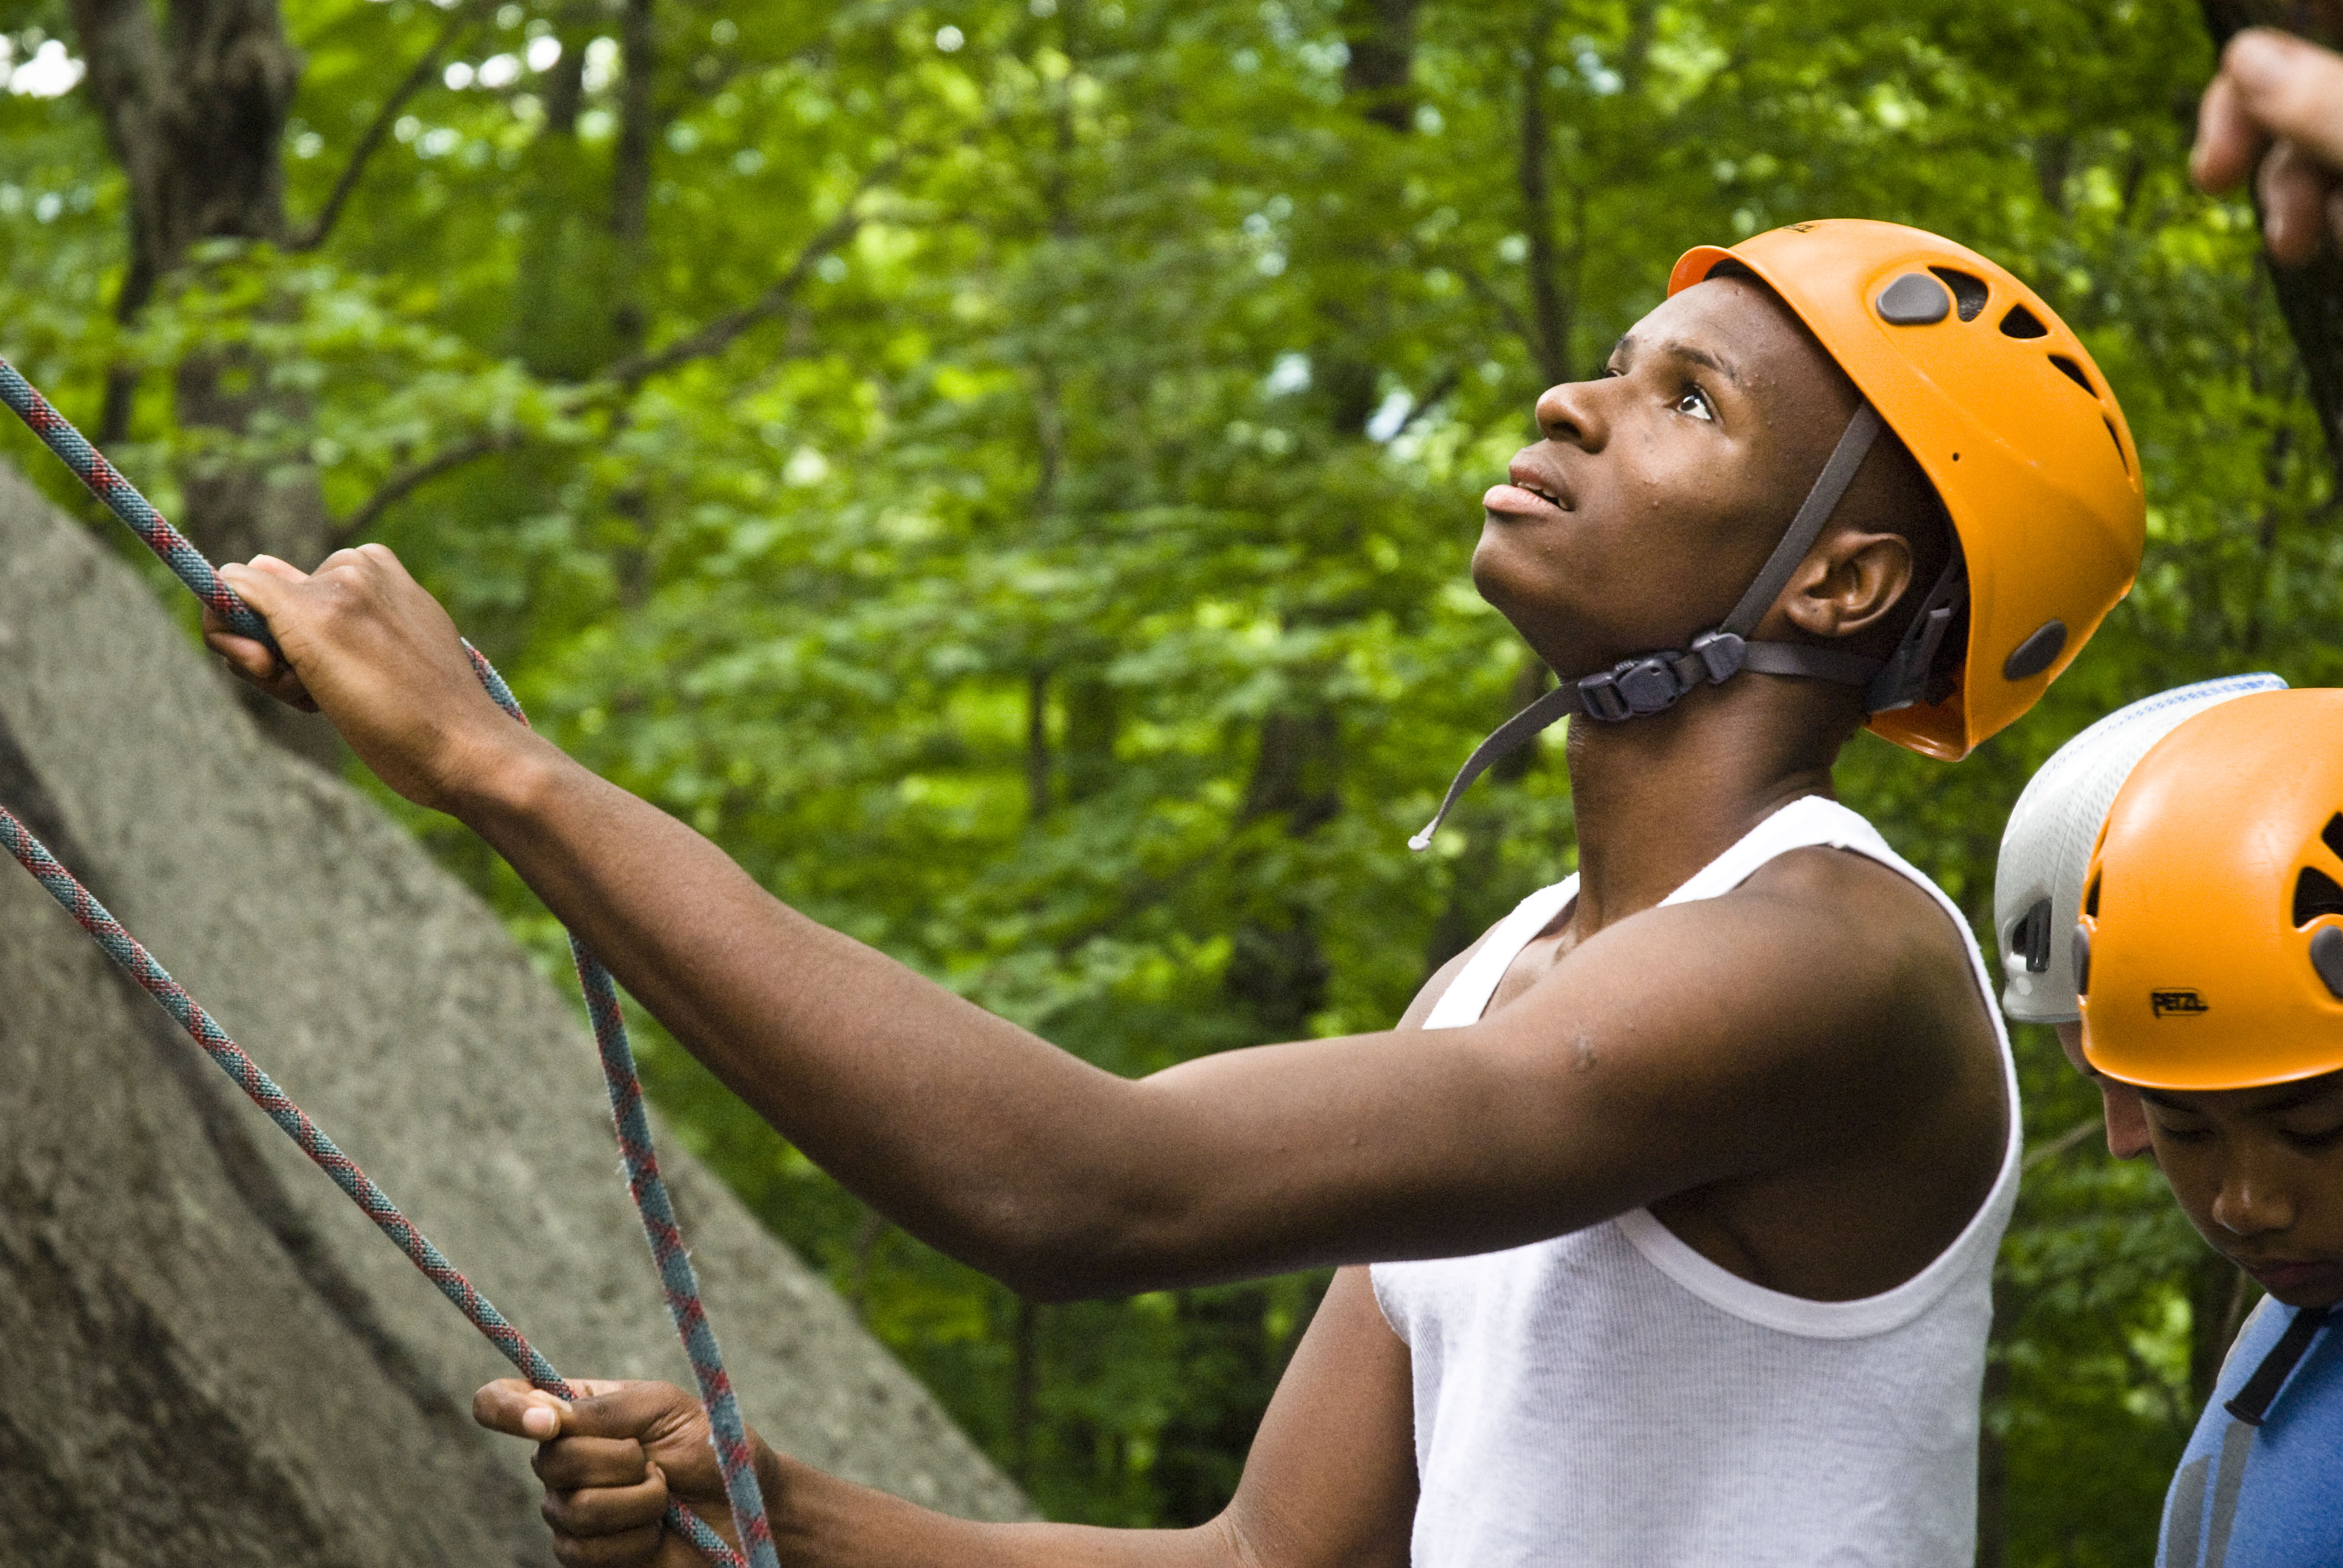 Summer Program - Hiking | AMC's Teen Wilderness Adventures: 7-Day Multisport Adventure - Hike, Climb, & Canoe (Ages 14-16)